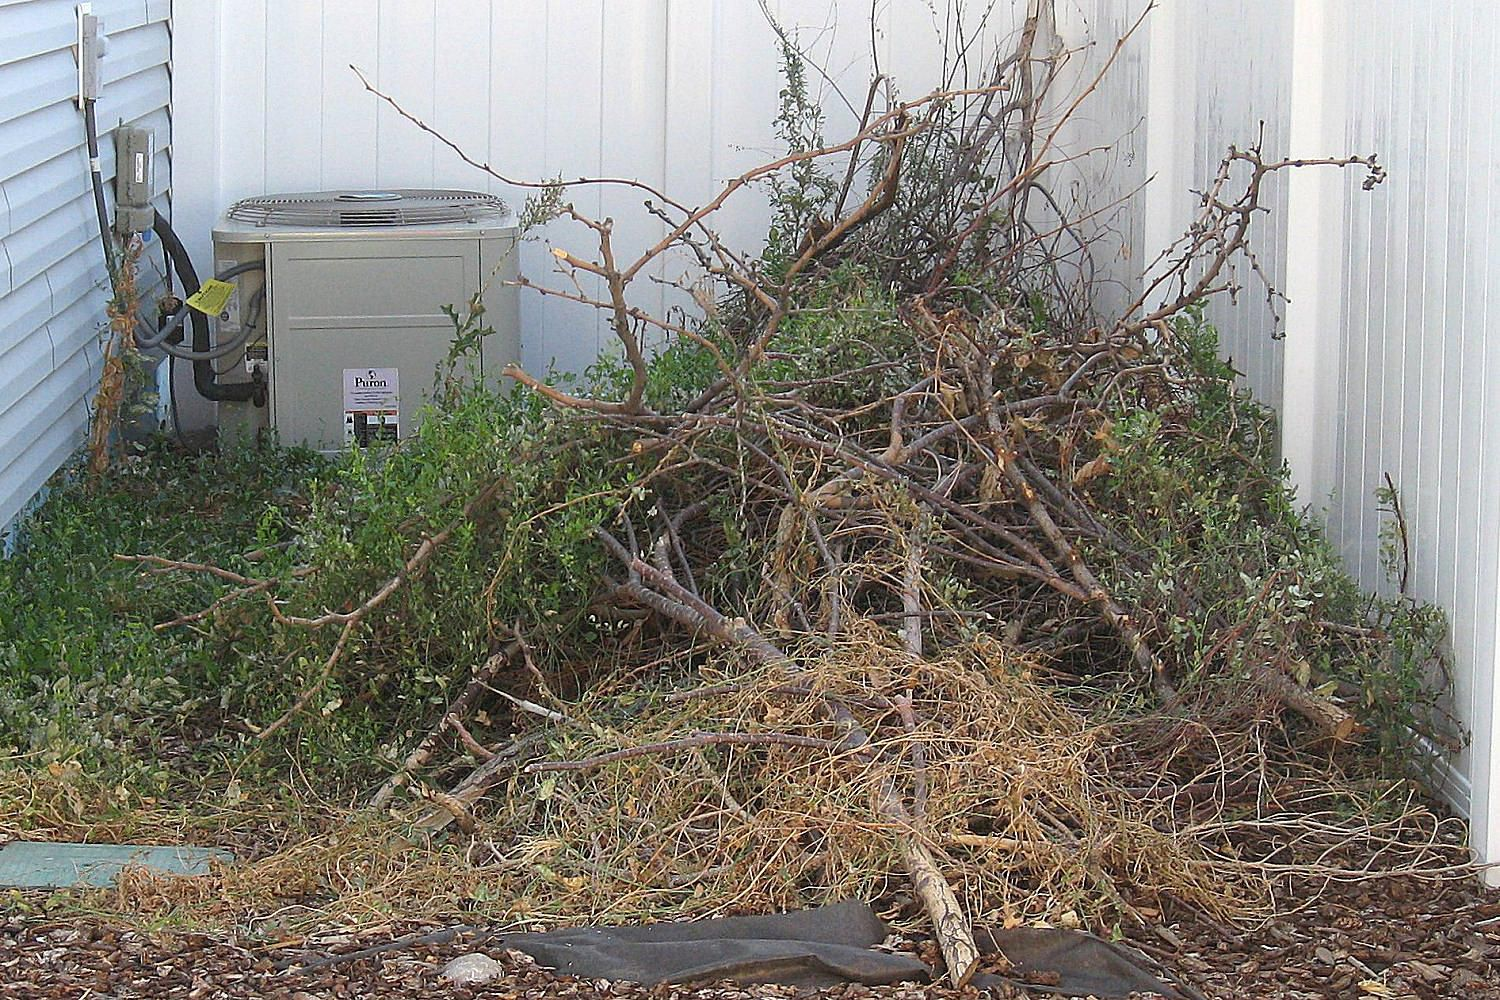 use a brush pile to attract birds looking for shelter